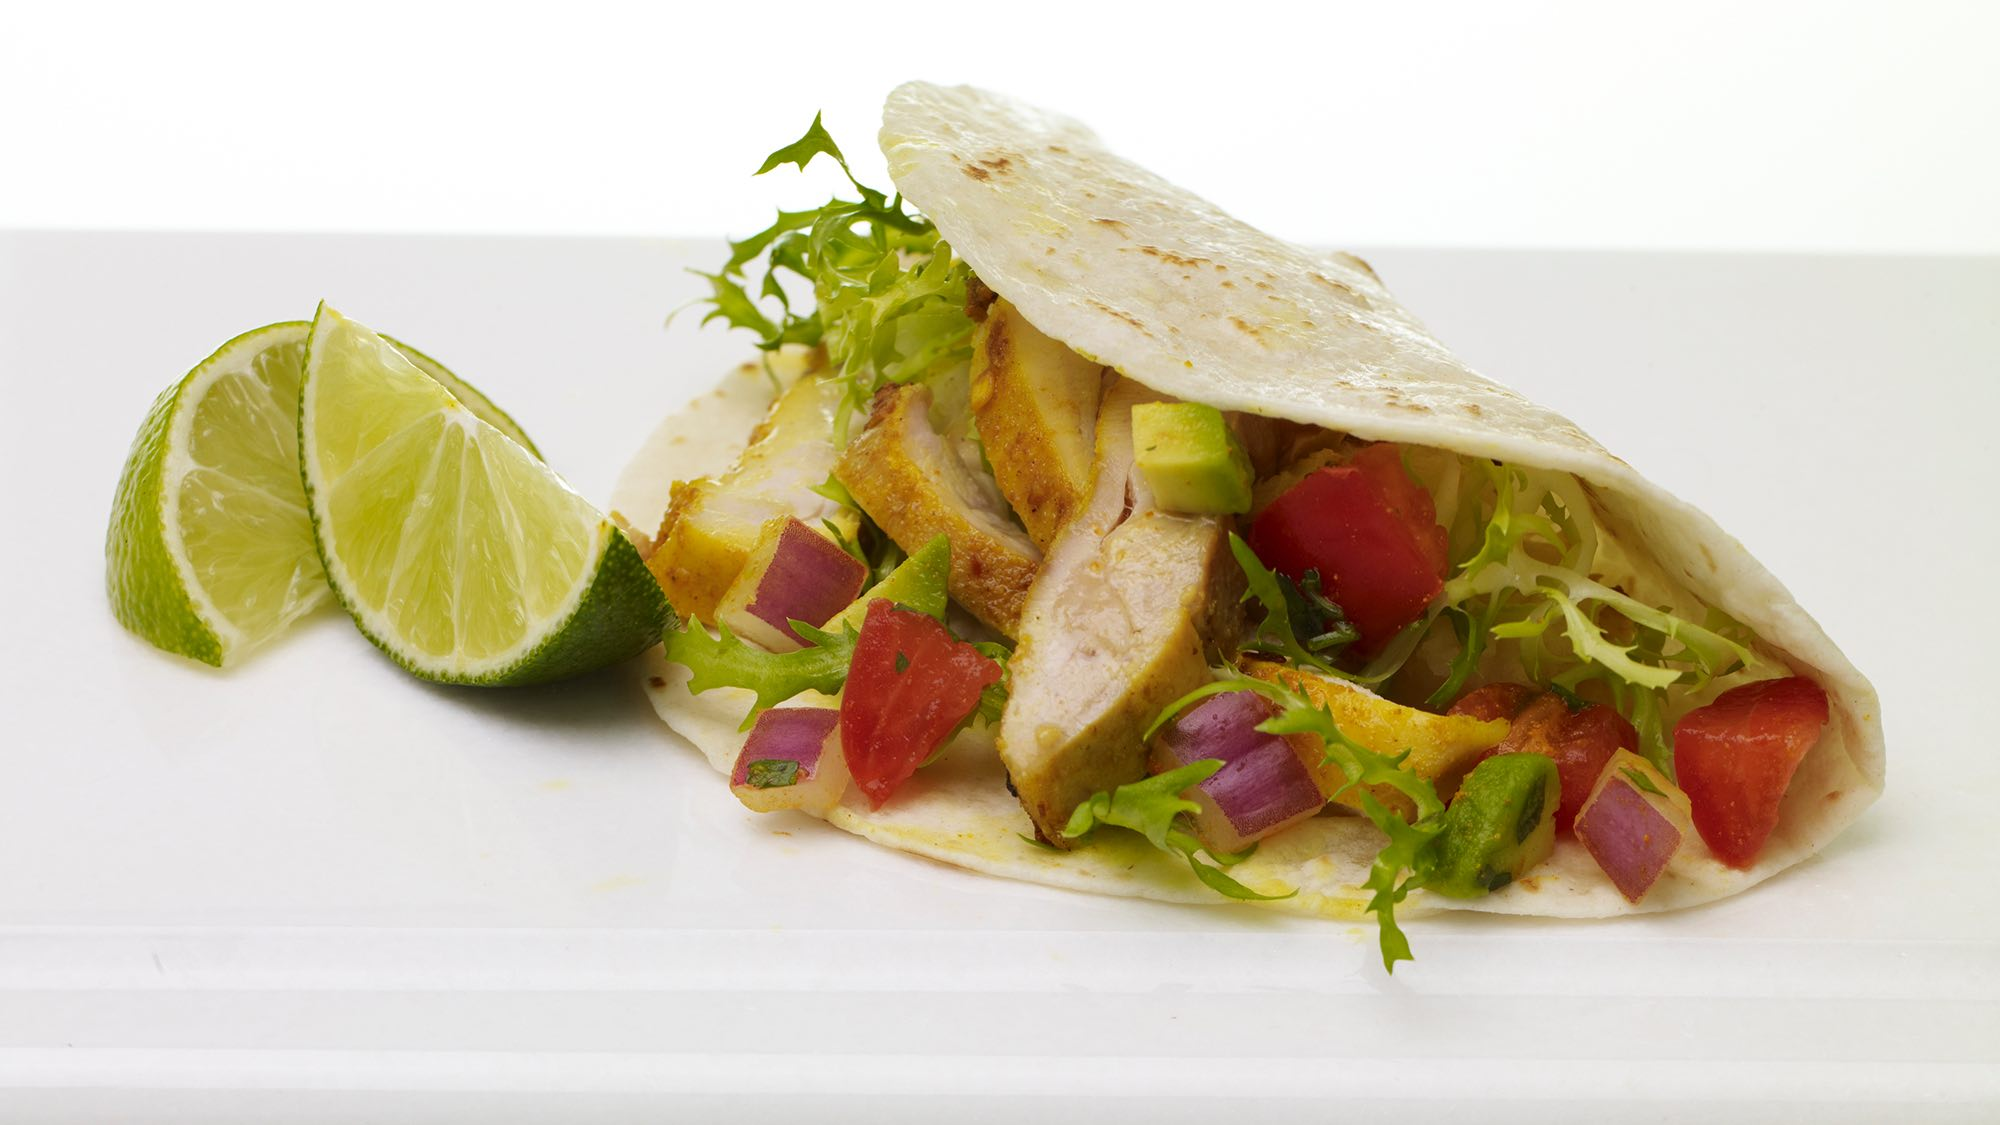 McCormick Turmeric Chicken Tacos with Tomato Avocado Salsa